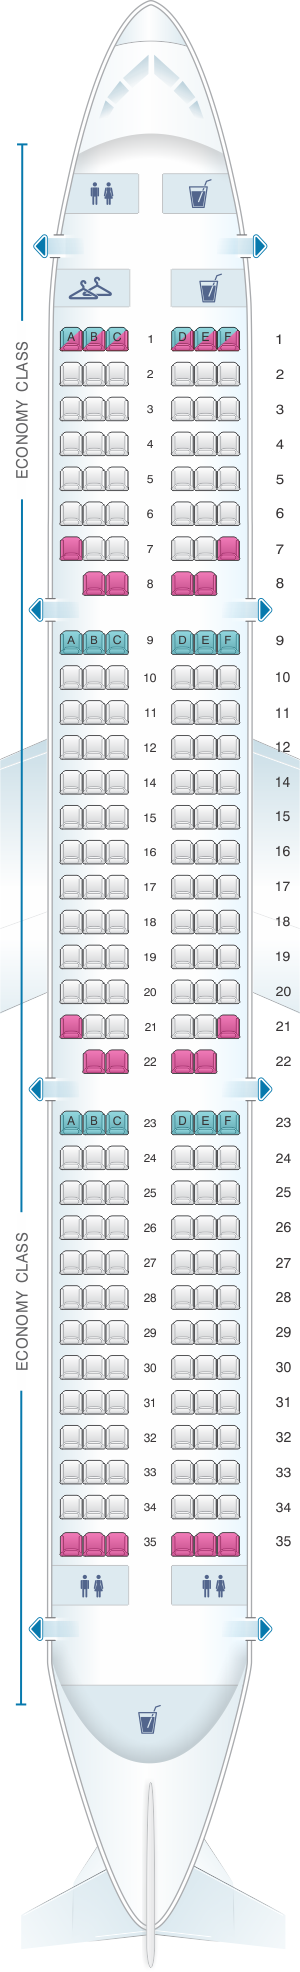 Seat map for Iberia Airbus A321